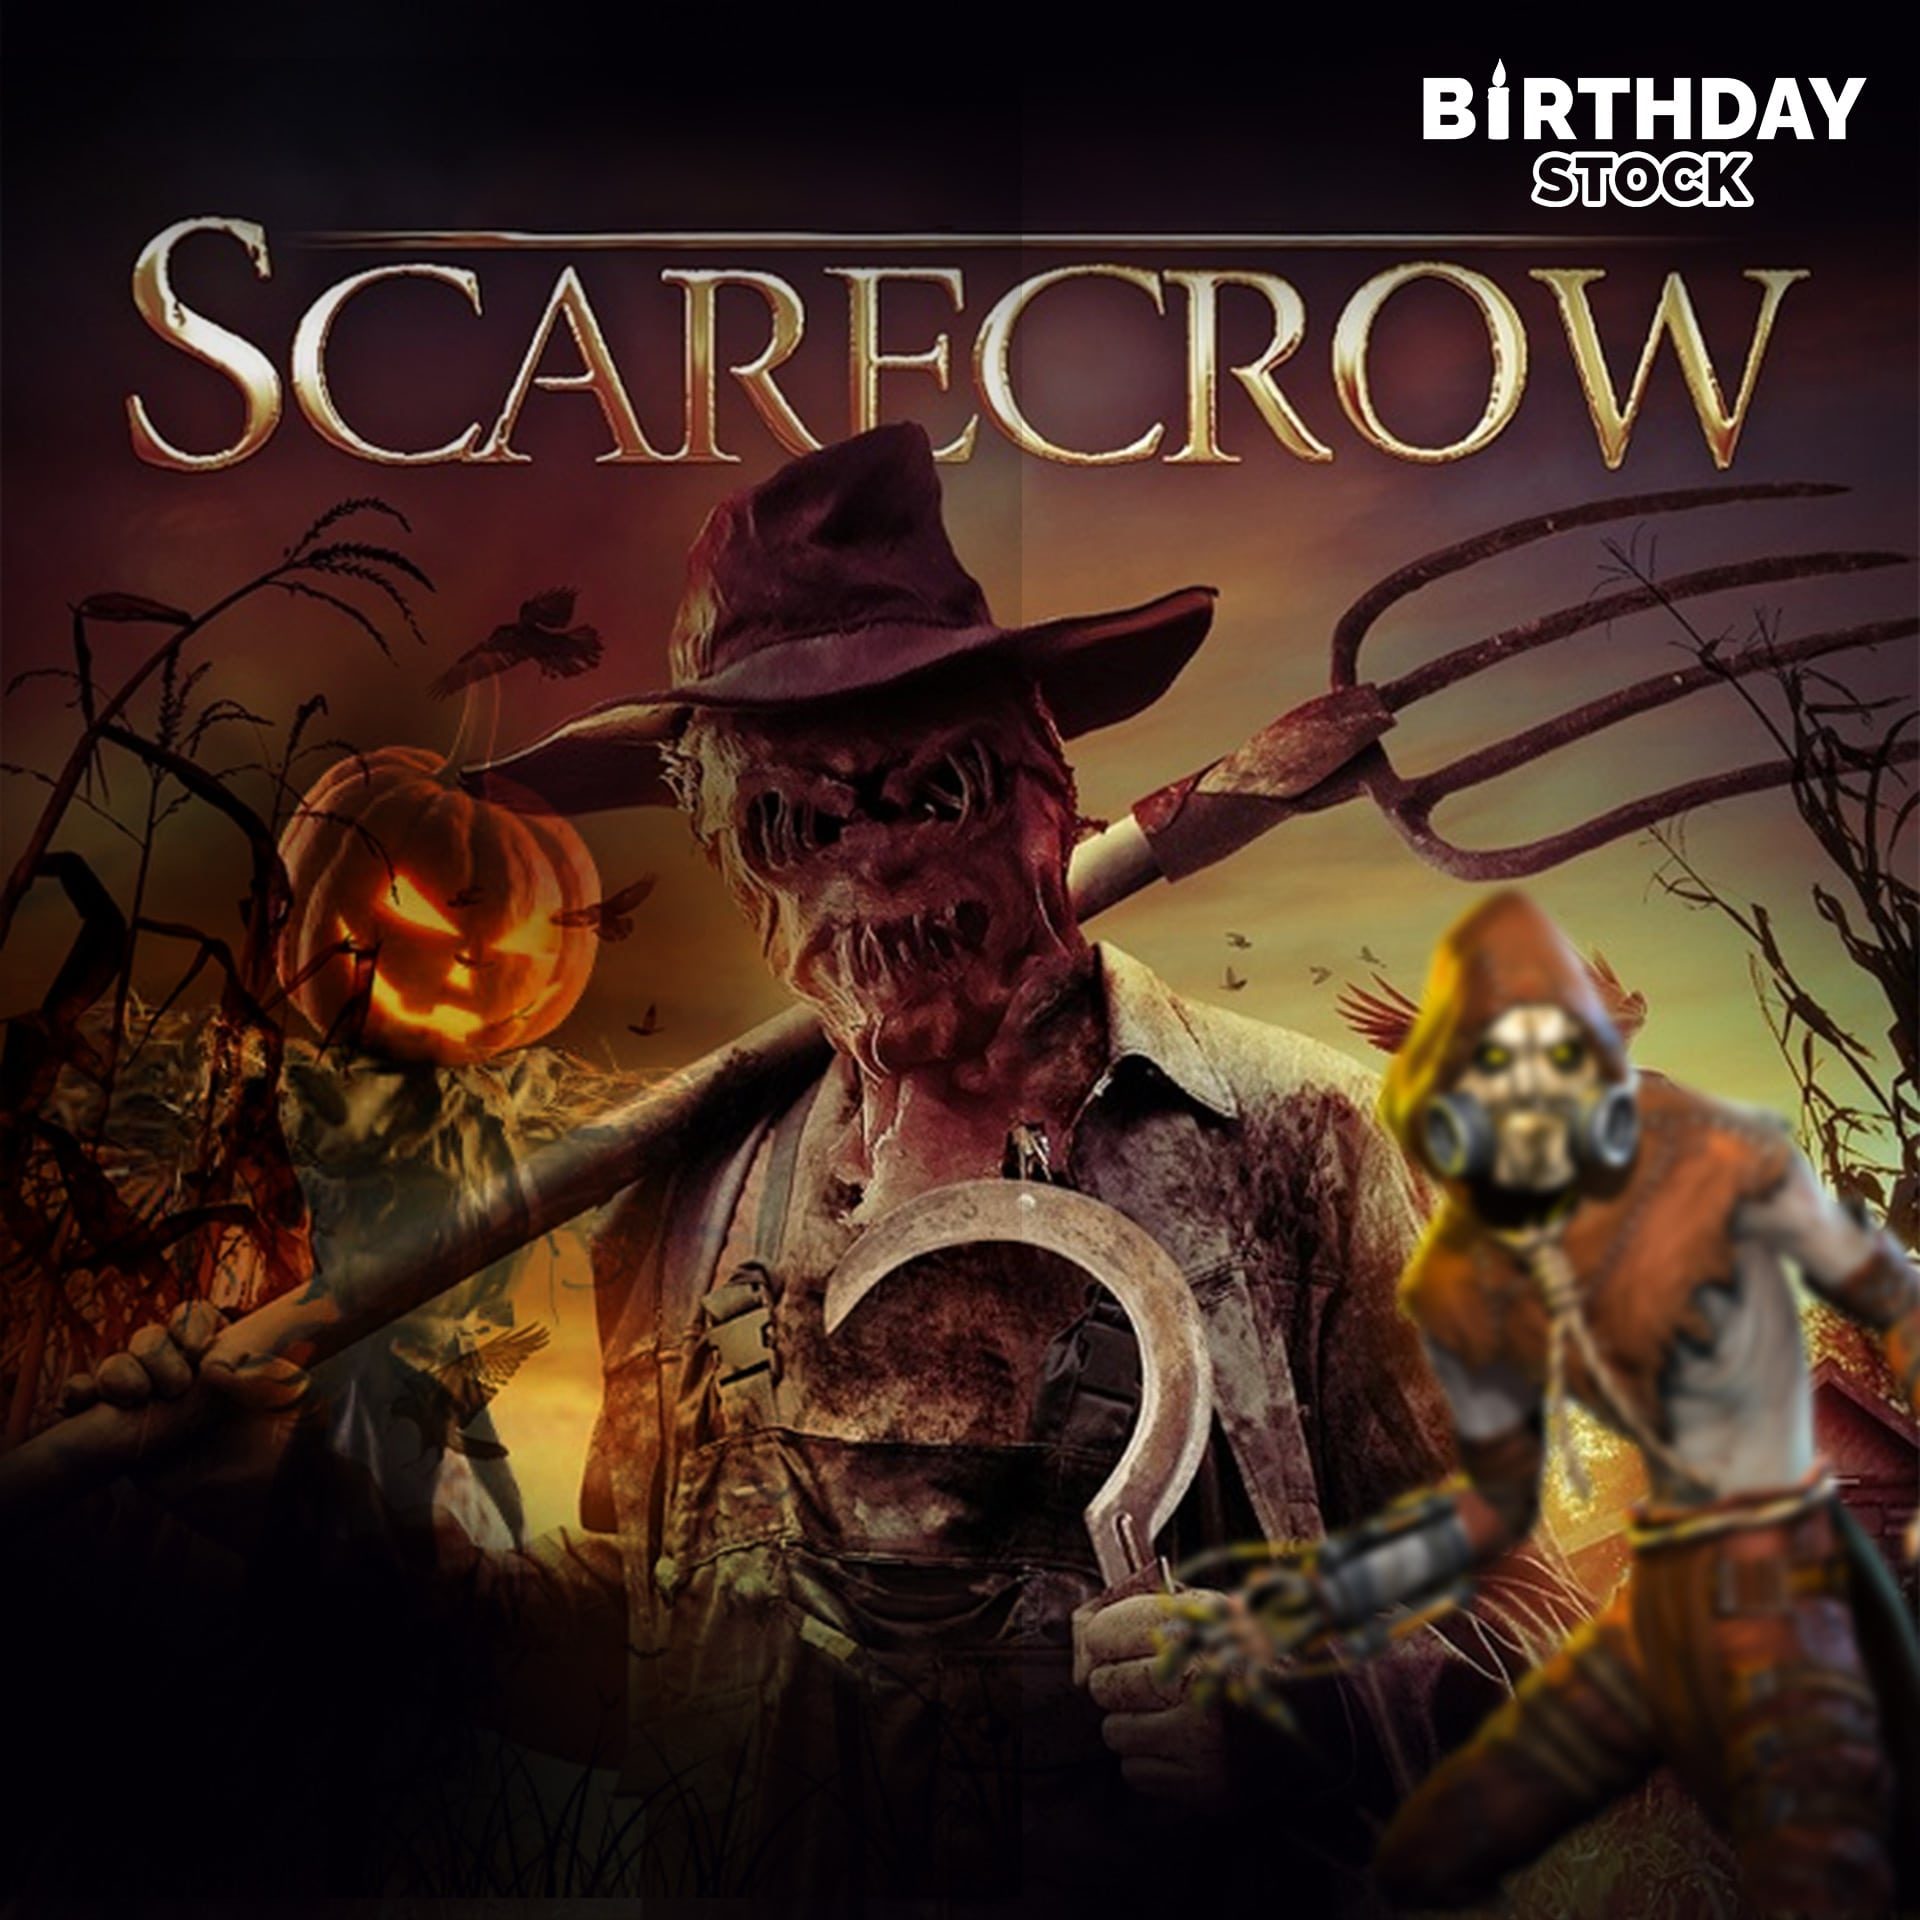 scarecrow costumes for family, kids, dogs